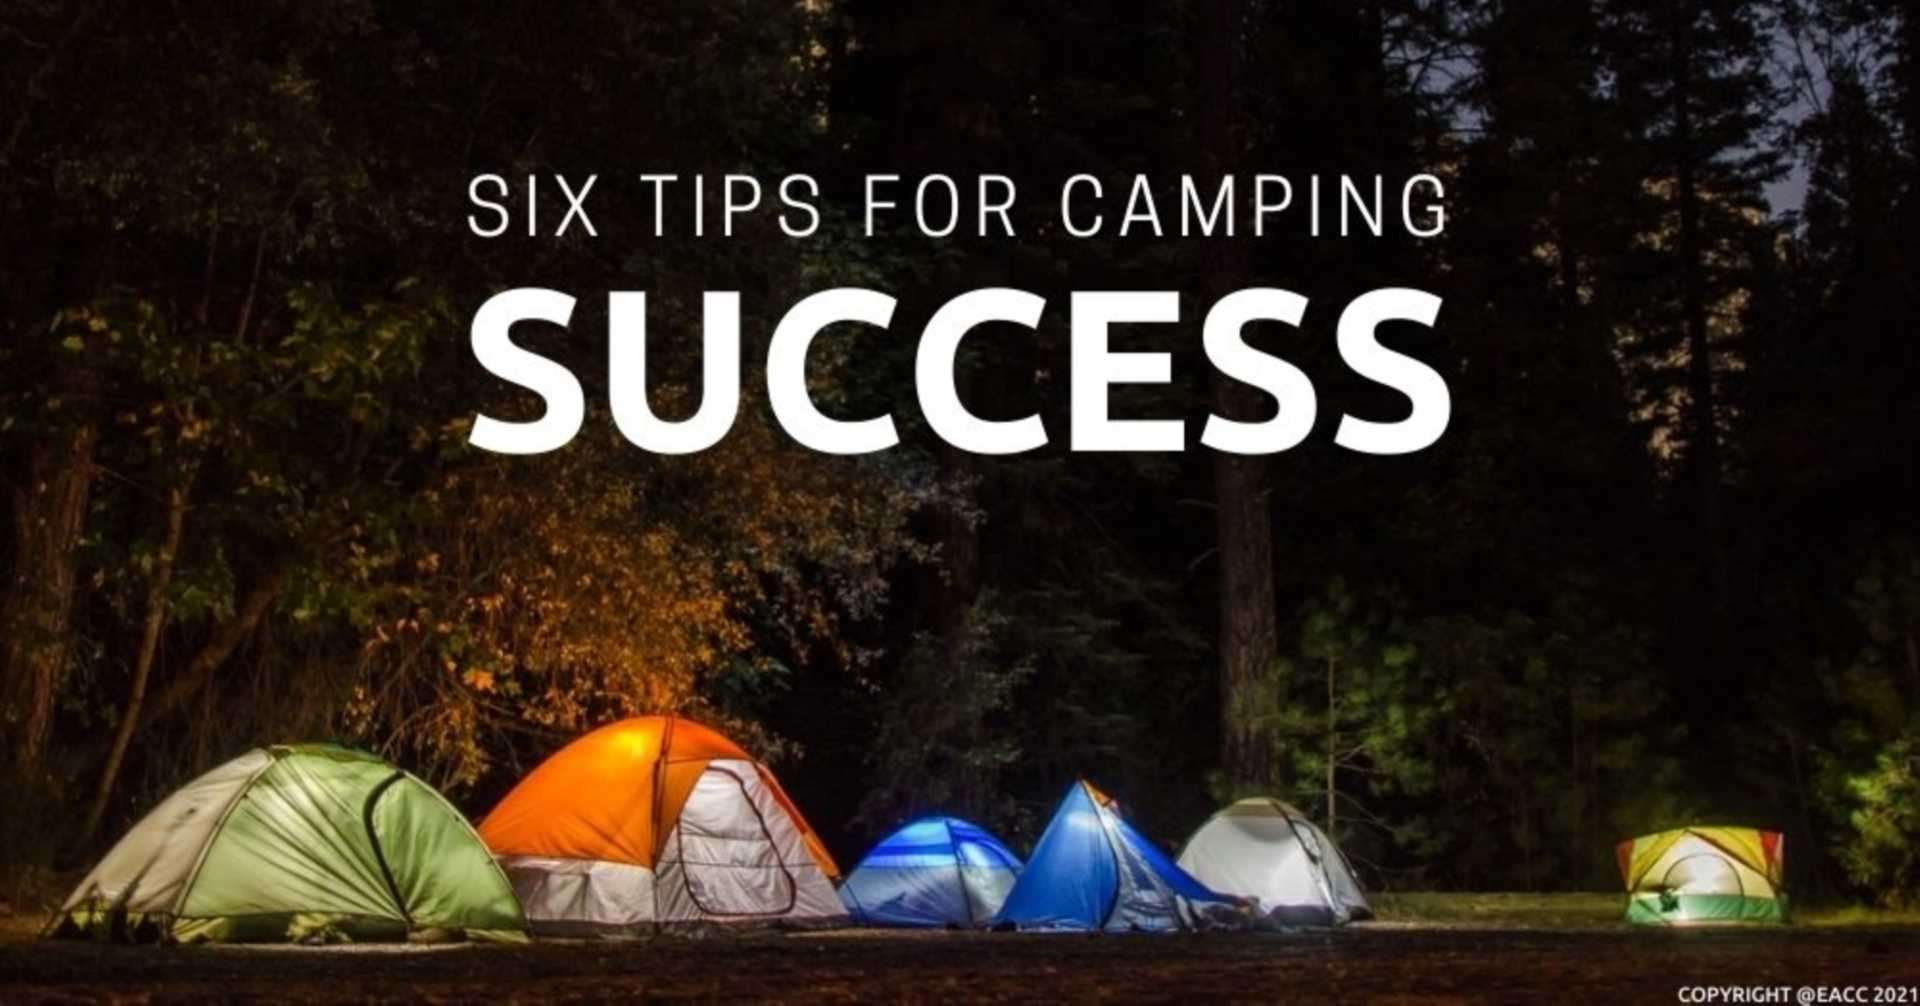 Six Top Tips for Camping Trips in Warwickshire